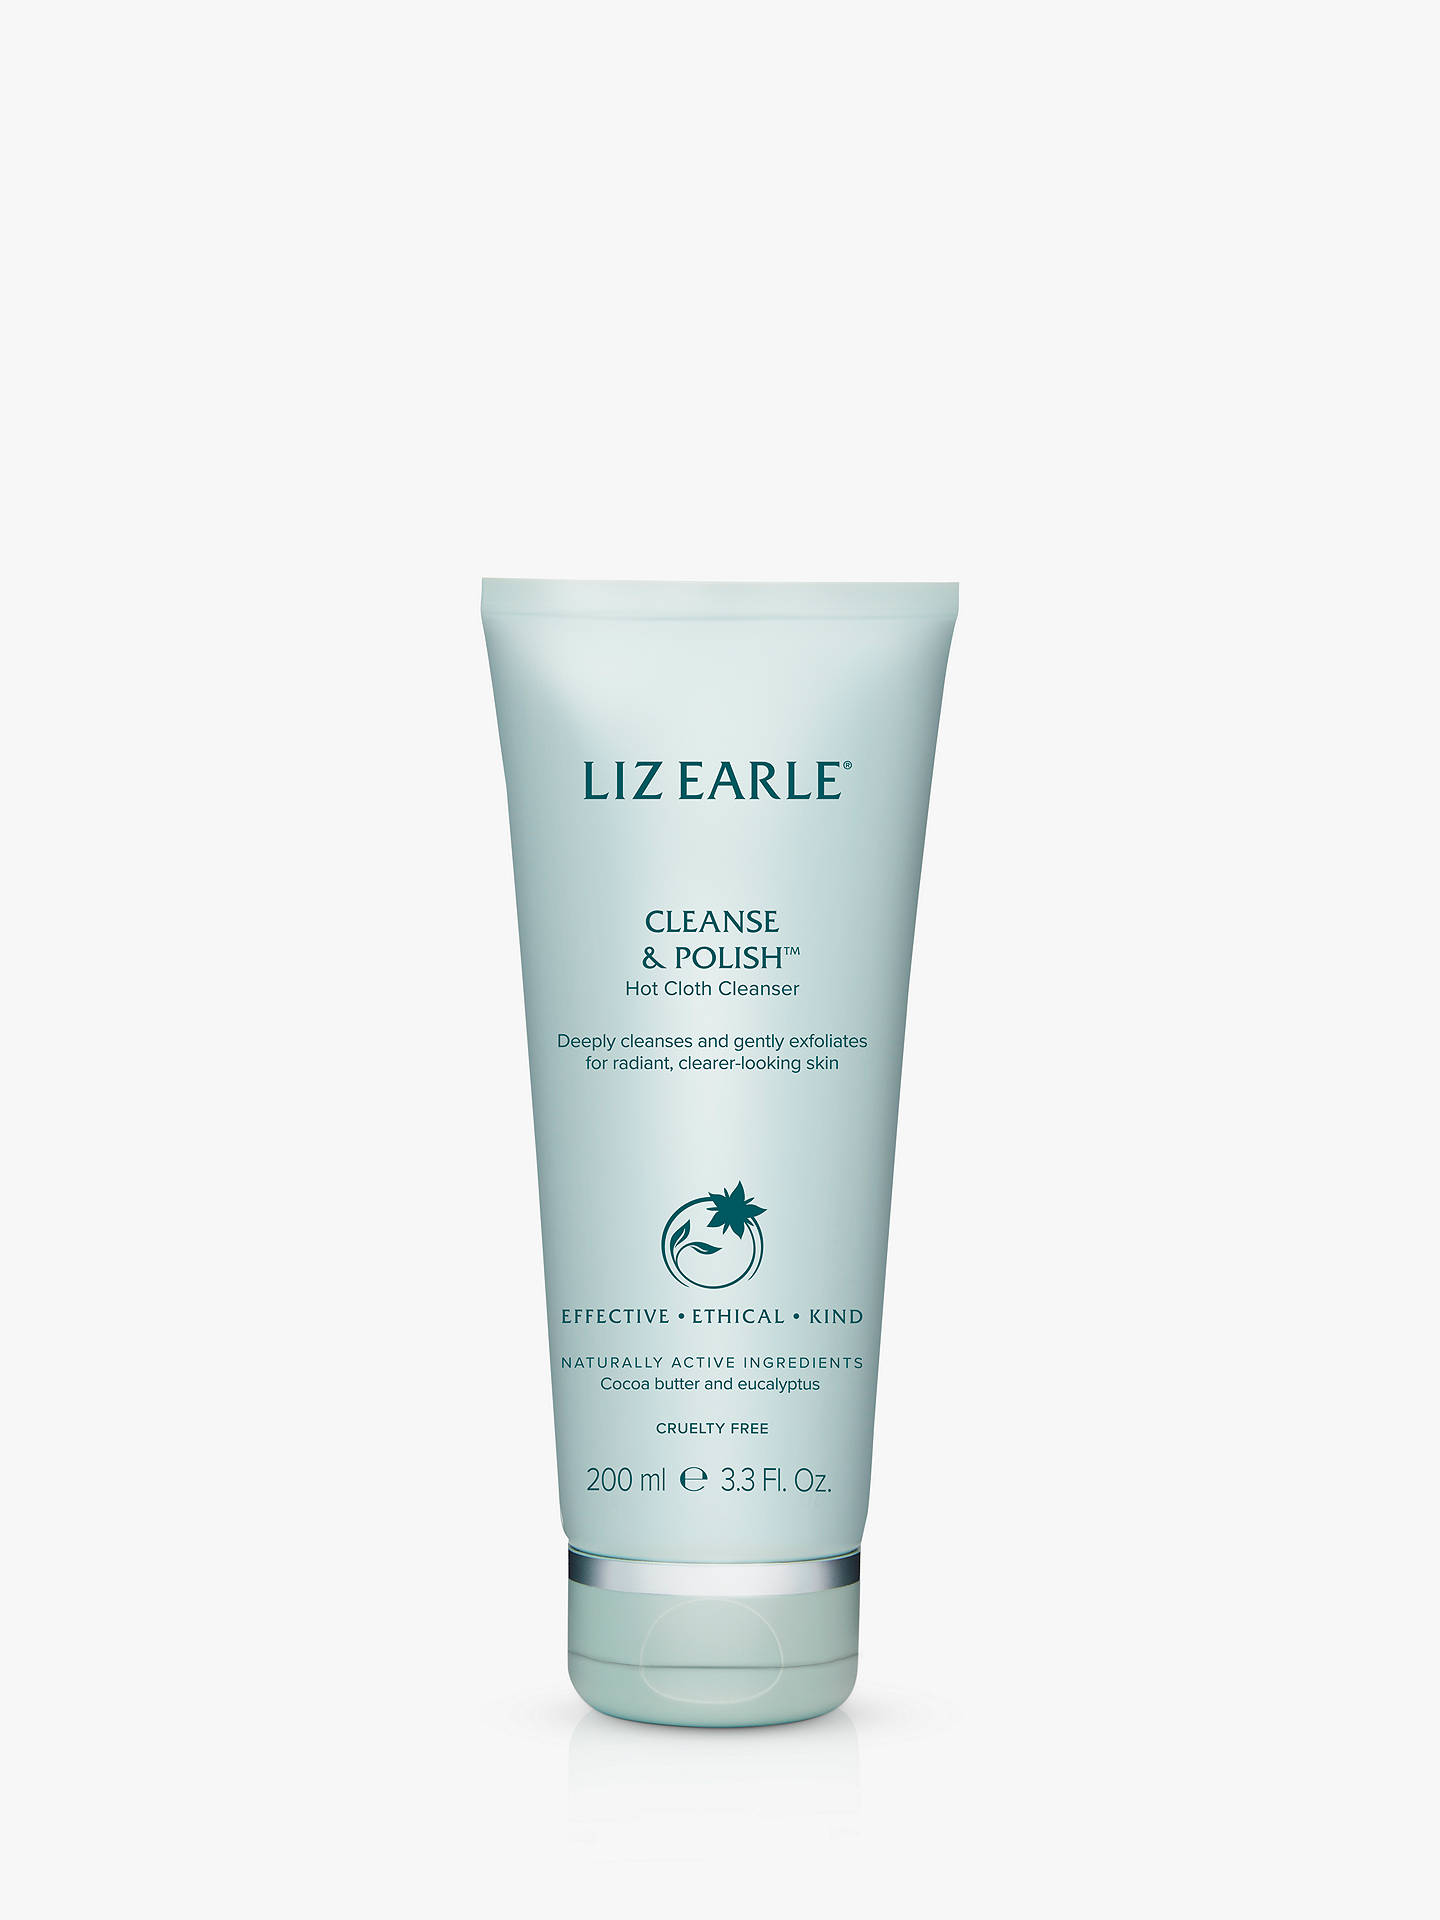 BuyLiz Earle Cleanse & Polish™ Hot Cloth Cleanser, 200ml Online at johnlewis.com